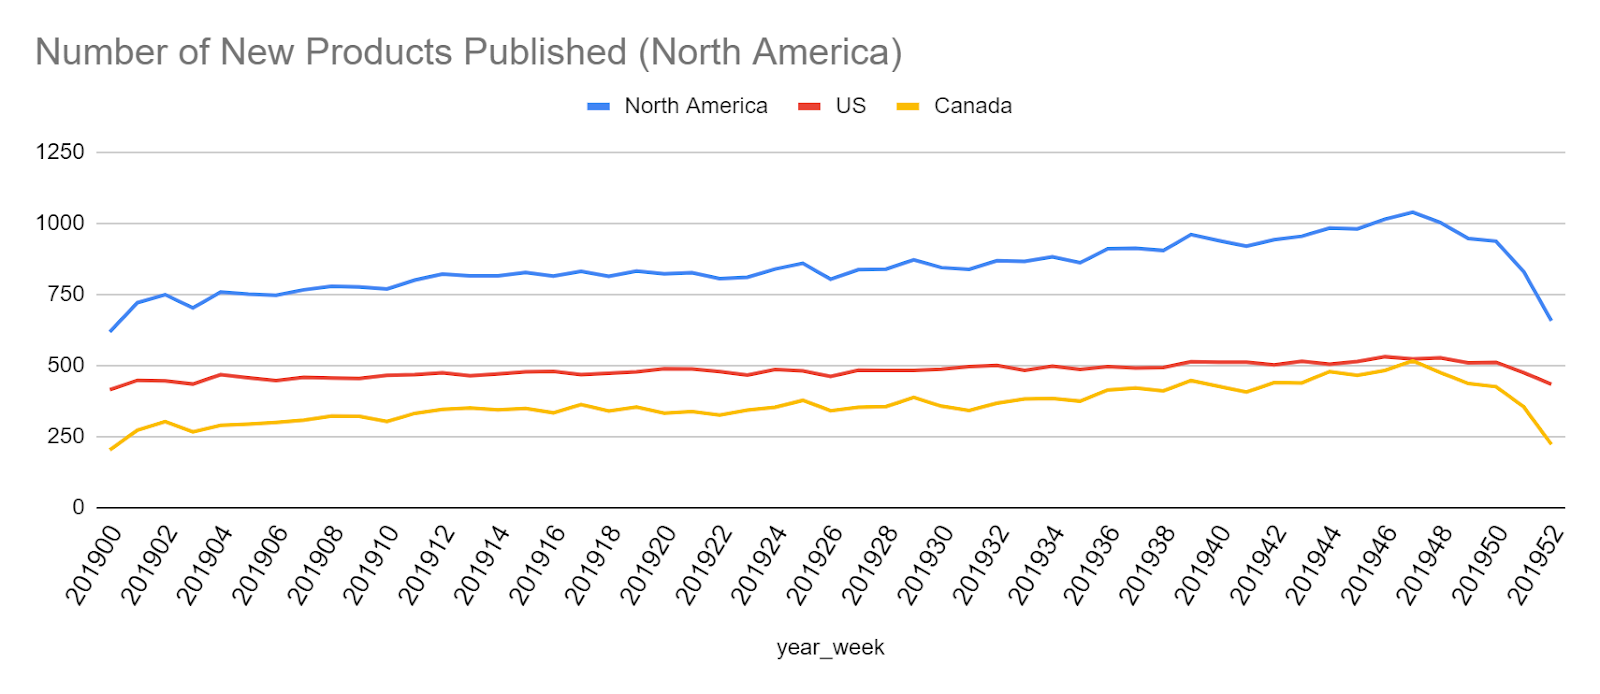 Number of New Products Published in North America